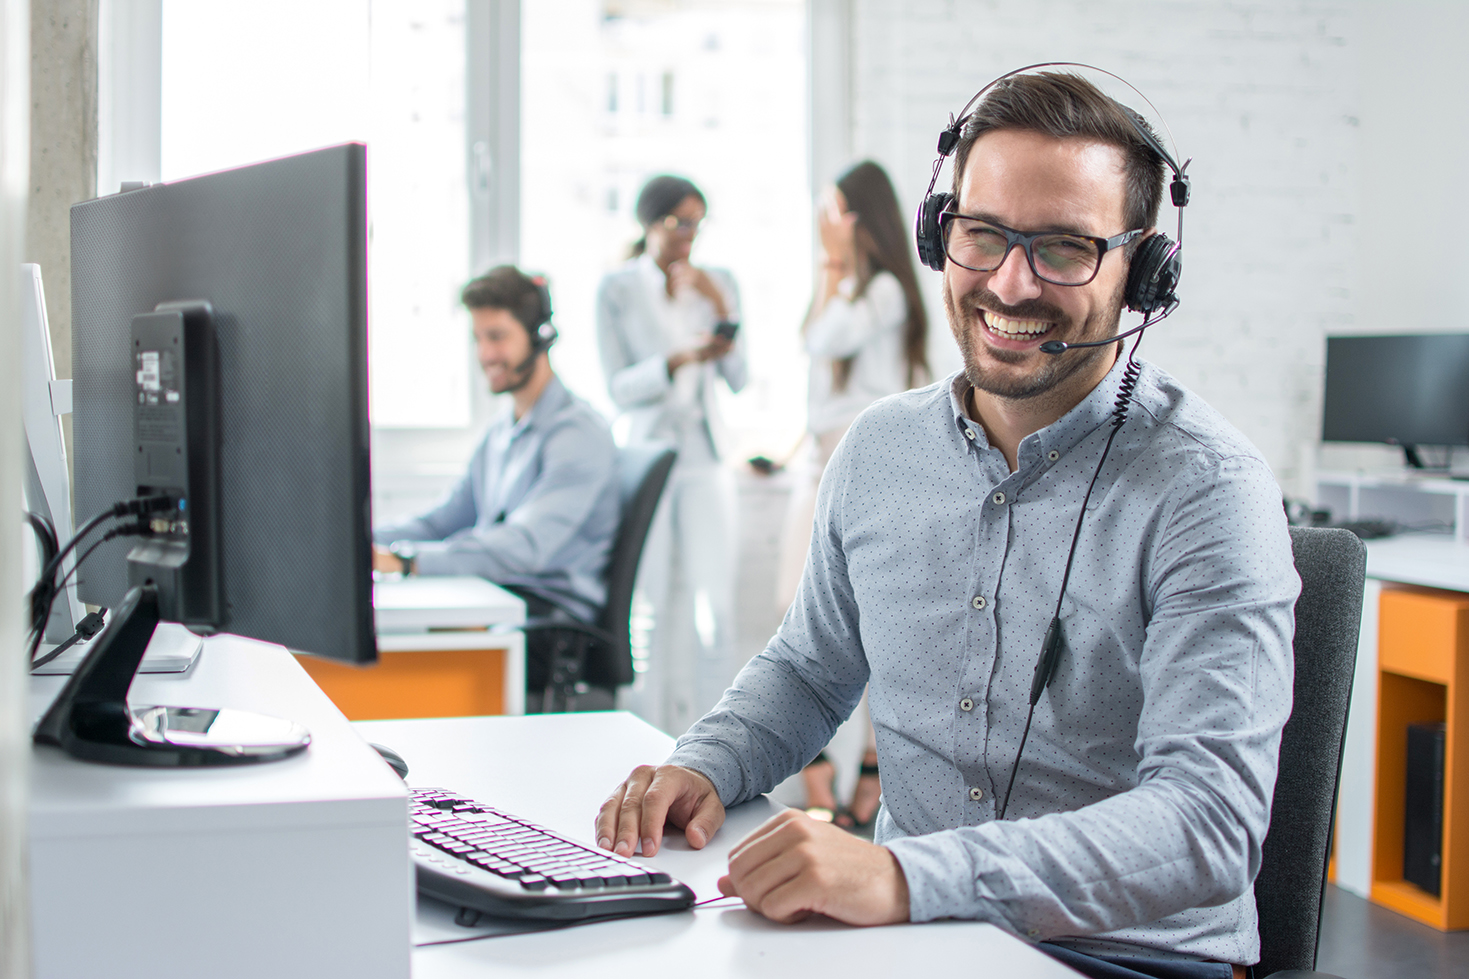 The best VoIP phone service makes incredible customer experiences.